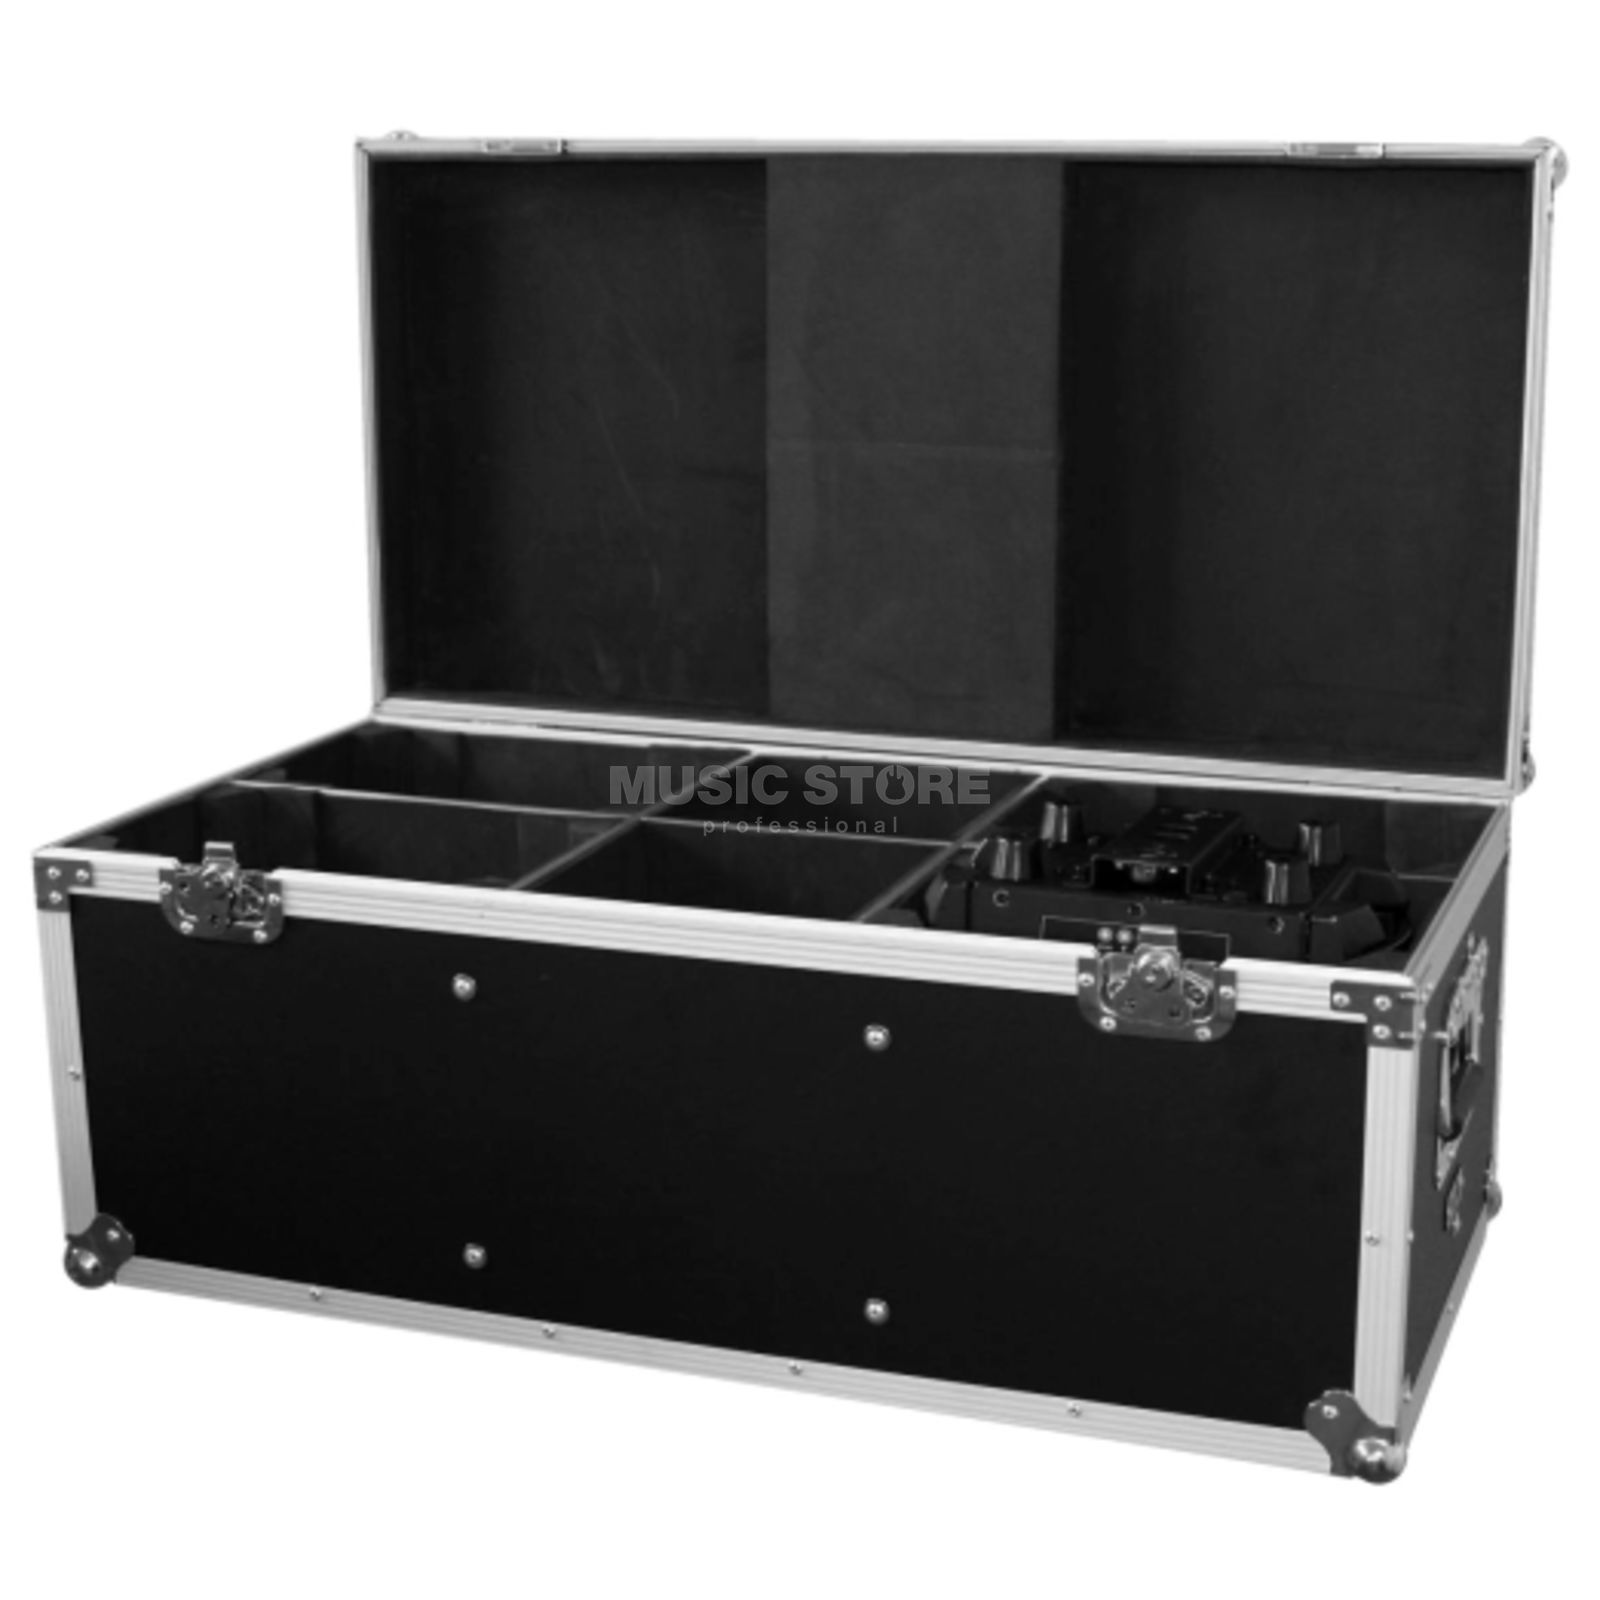 JB Systems Case for 4x BT-W36L3/BT-W07L12 Accessories Compartments 785x385x335mm Produktbillede